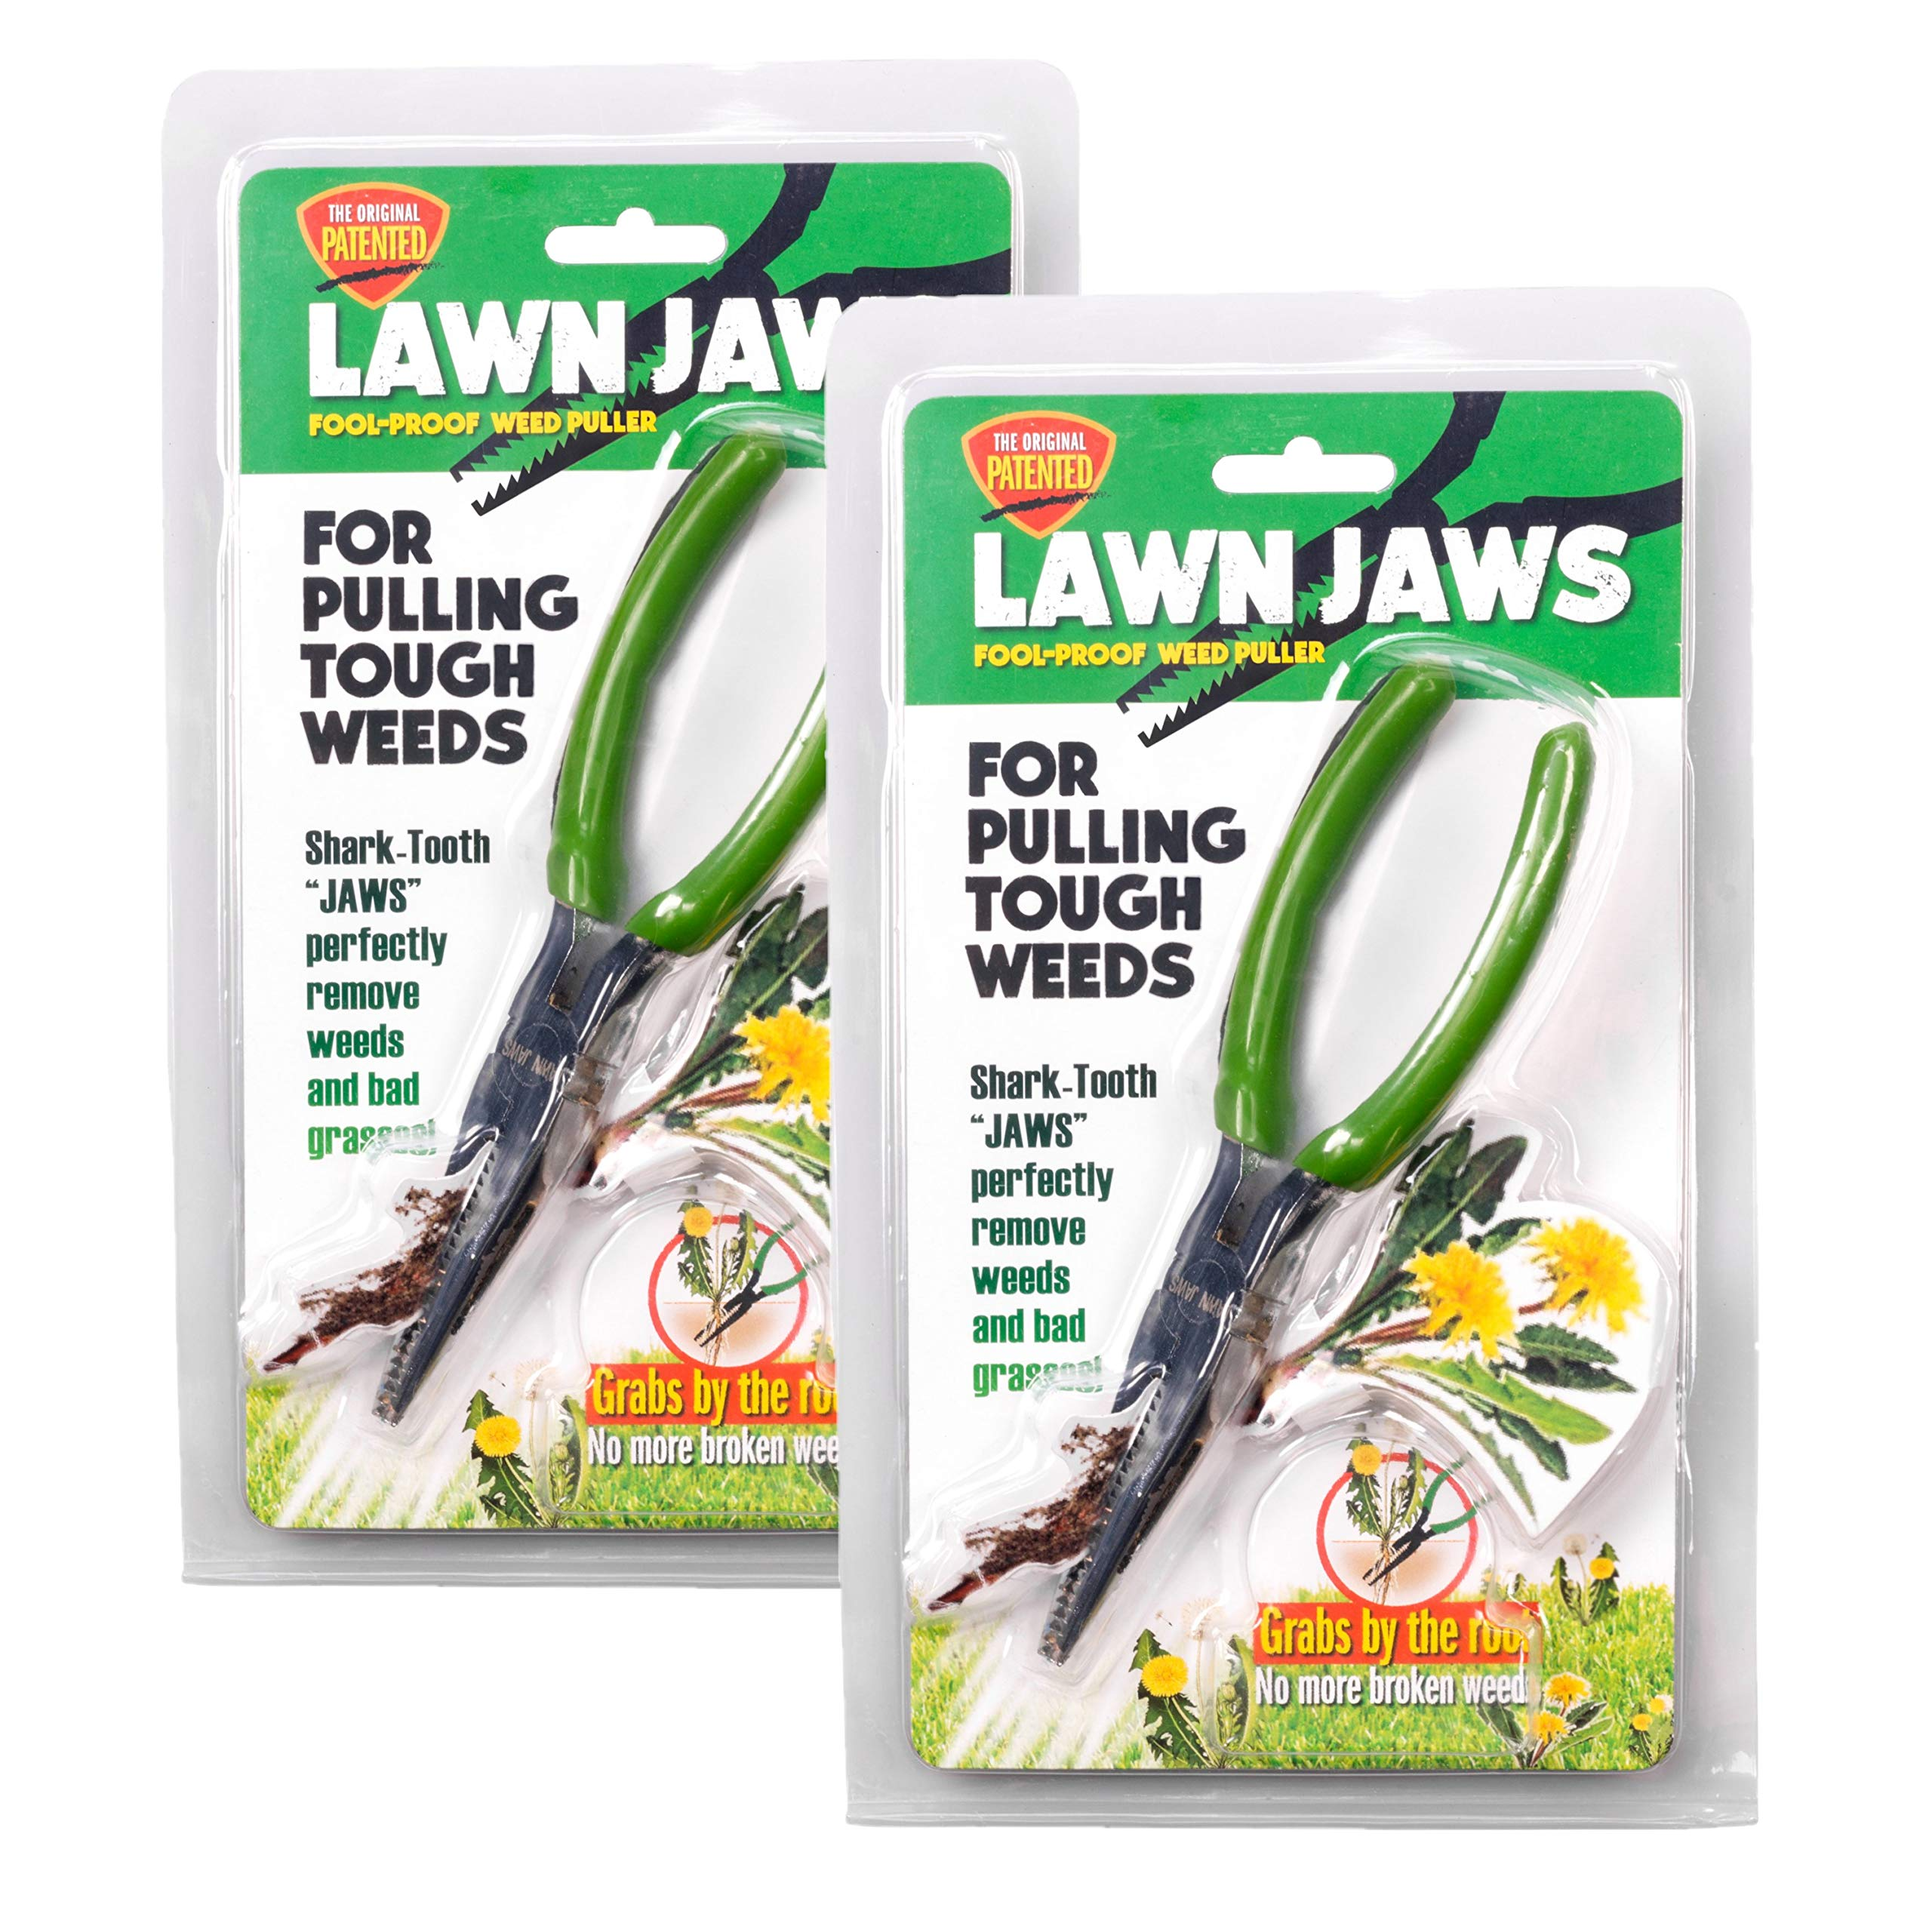 Lawn Jaws The Original Sharktooth Weed Puller Remover Weeding & Gardening Tool Weeder - Pull from The Root Easily! - Value Pack, 2 Weed Pullers